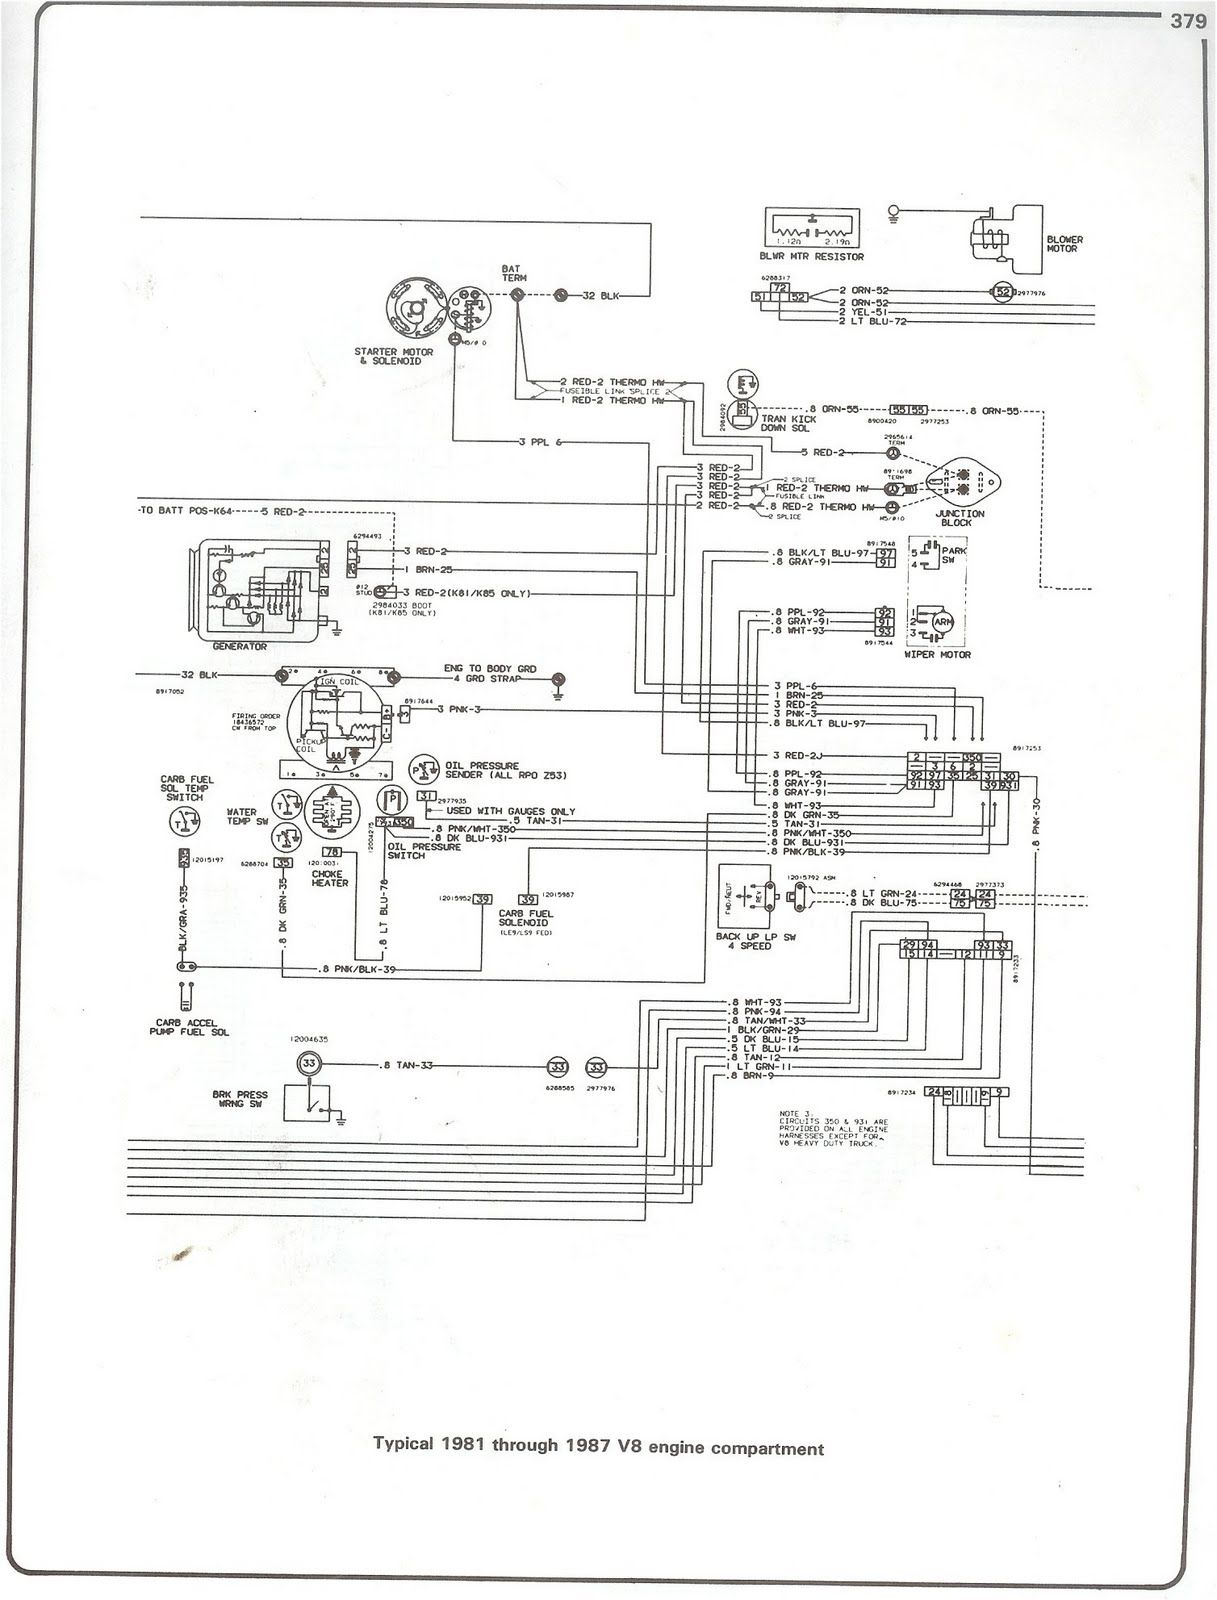 medium resolution of k5 blazer wiring harness wiring diagram centrek5 blazer wiring harness wiring diagram paperk5 blazer wiring harness